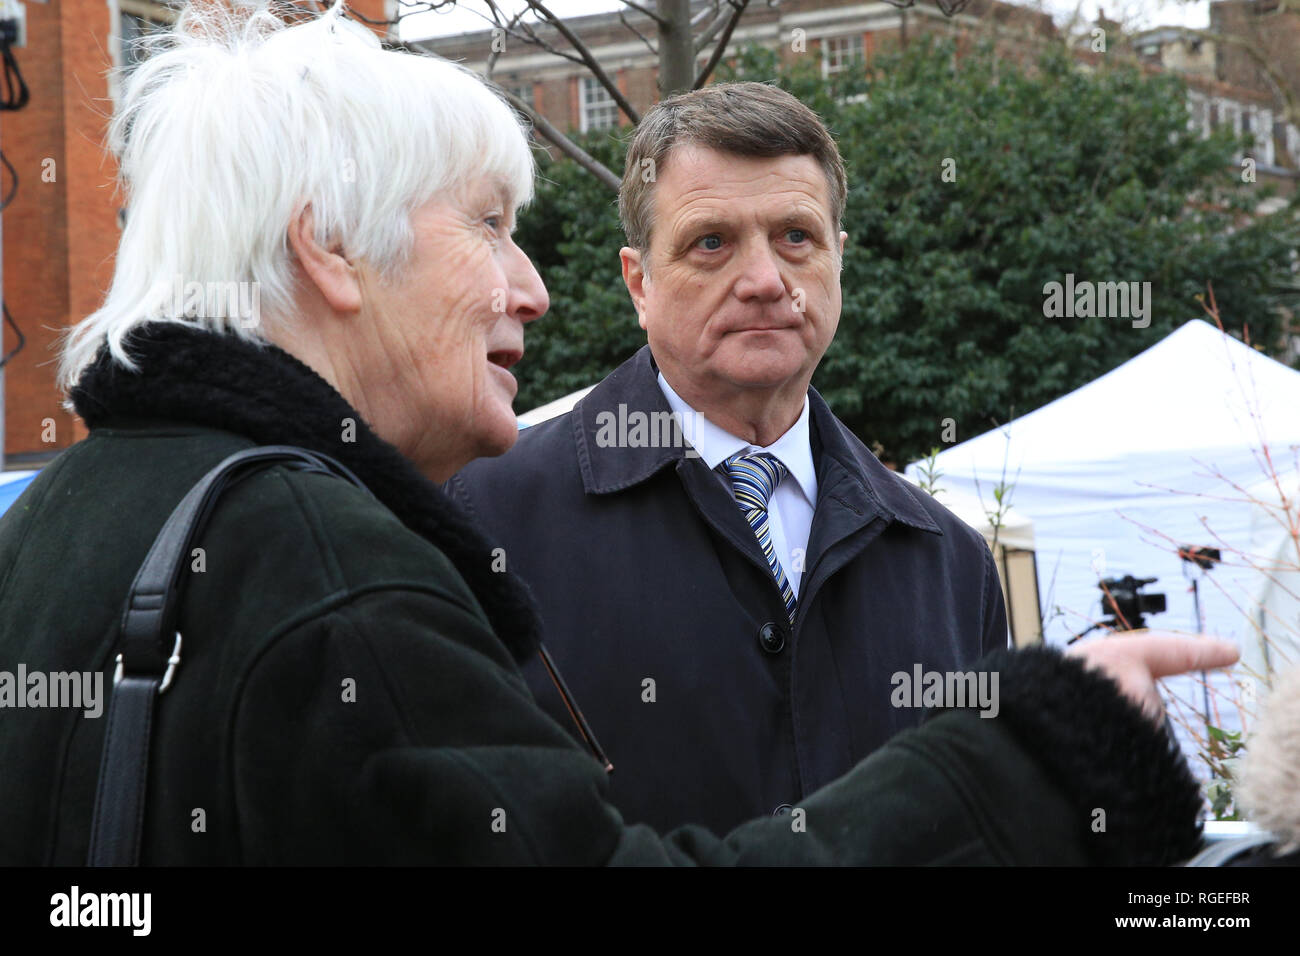 Westminster, London, UK, 29th Jan 2019. UK Leader Gerard Batten with supporters. Activists from both the pro Brexit and Remain campaigns protest in Westminster around the Houses of Parliament and College Green today, as Parliament is due to take decisions on amendments and vote on the Brexit deal once again. A heavier than usual police presence is noticeable and aggressions flare up throughout the day. Credit: Imageplotter News and Sports/Alamy Live News Stock Photo